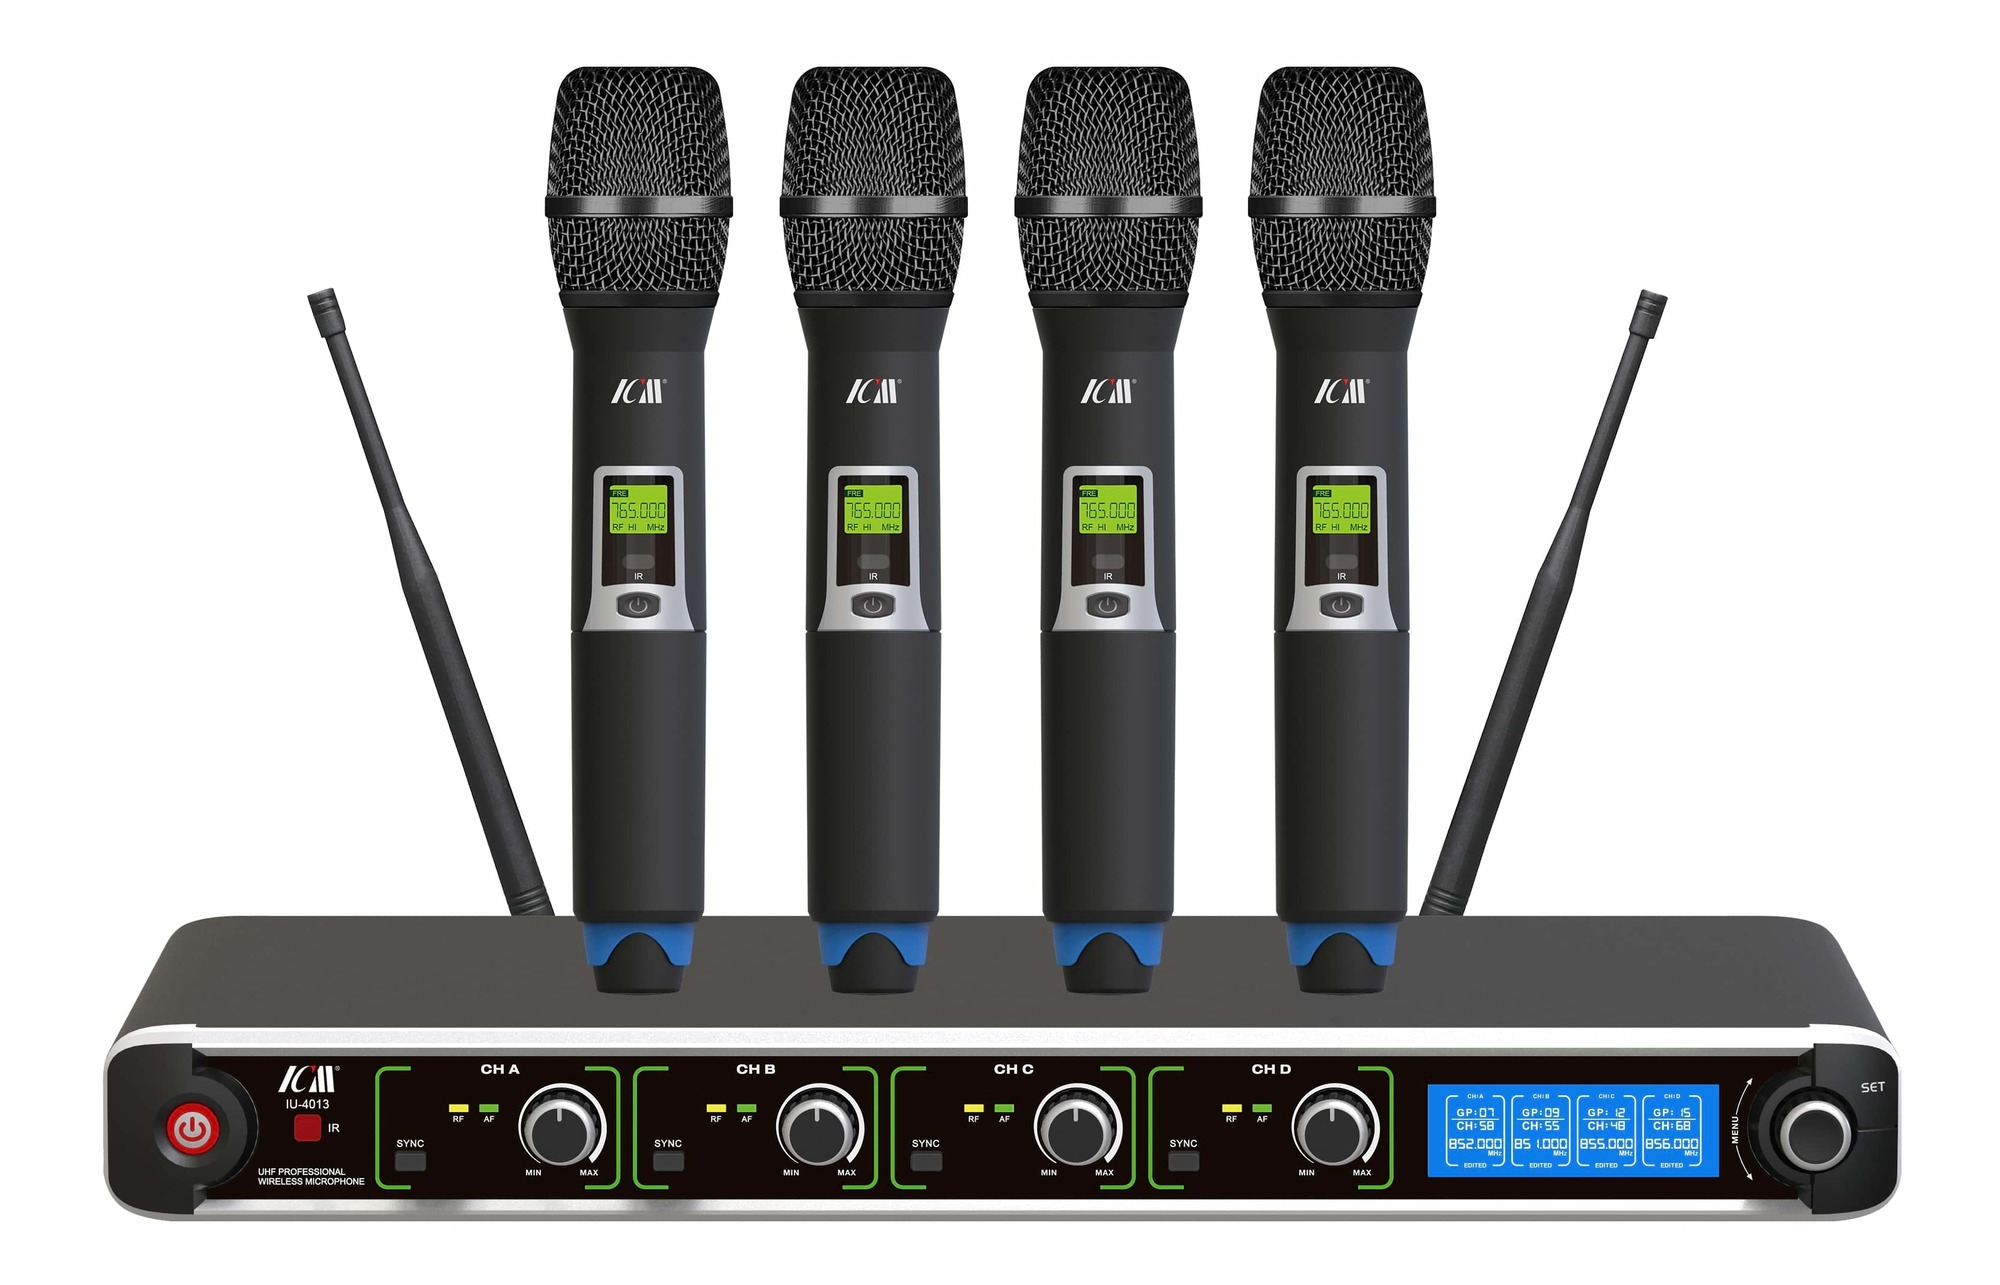 ICM IU-4013 Four Channel Wireless Microphone System - 4 Handheld Mics